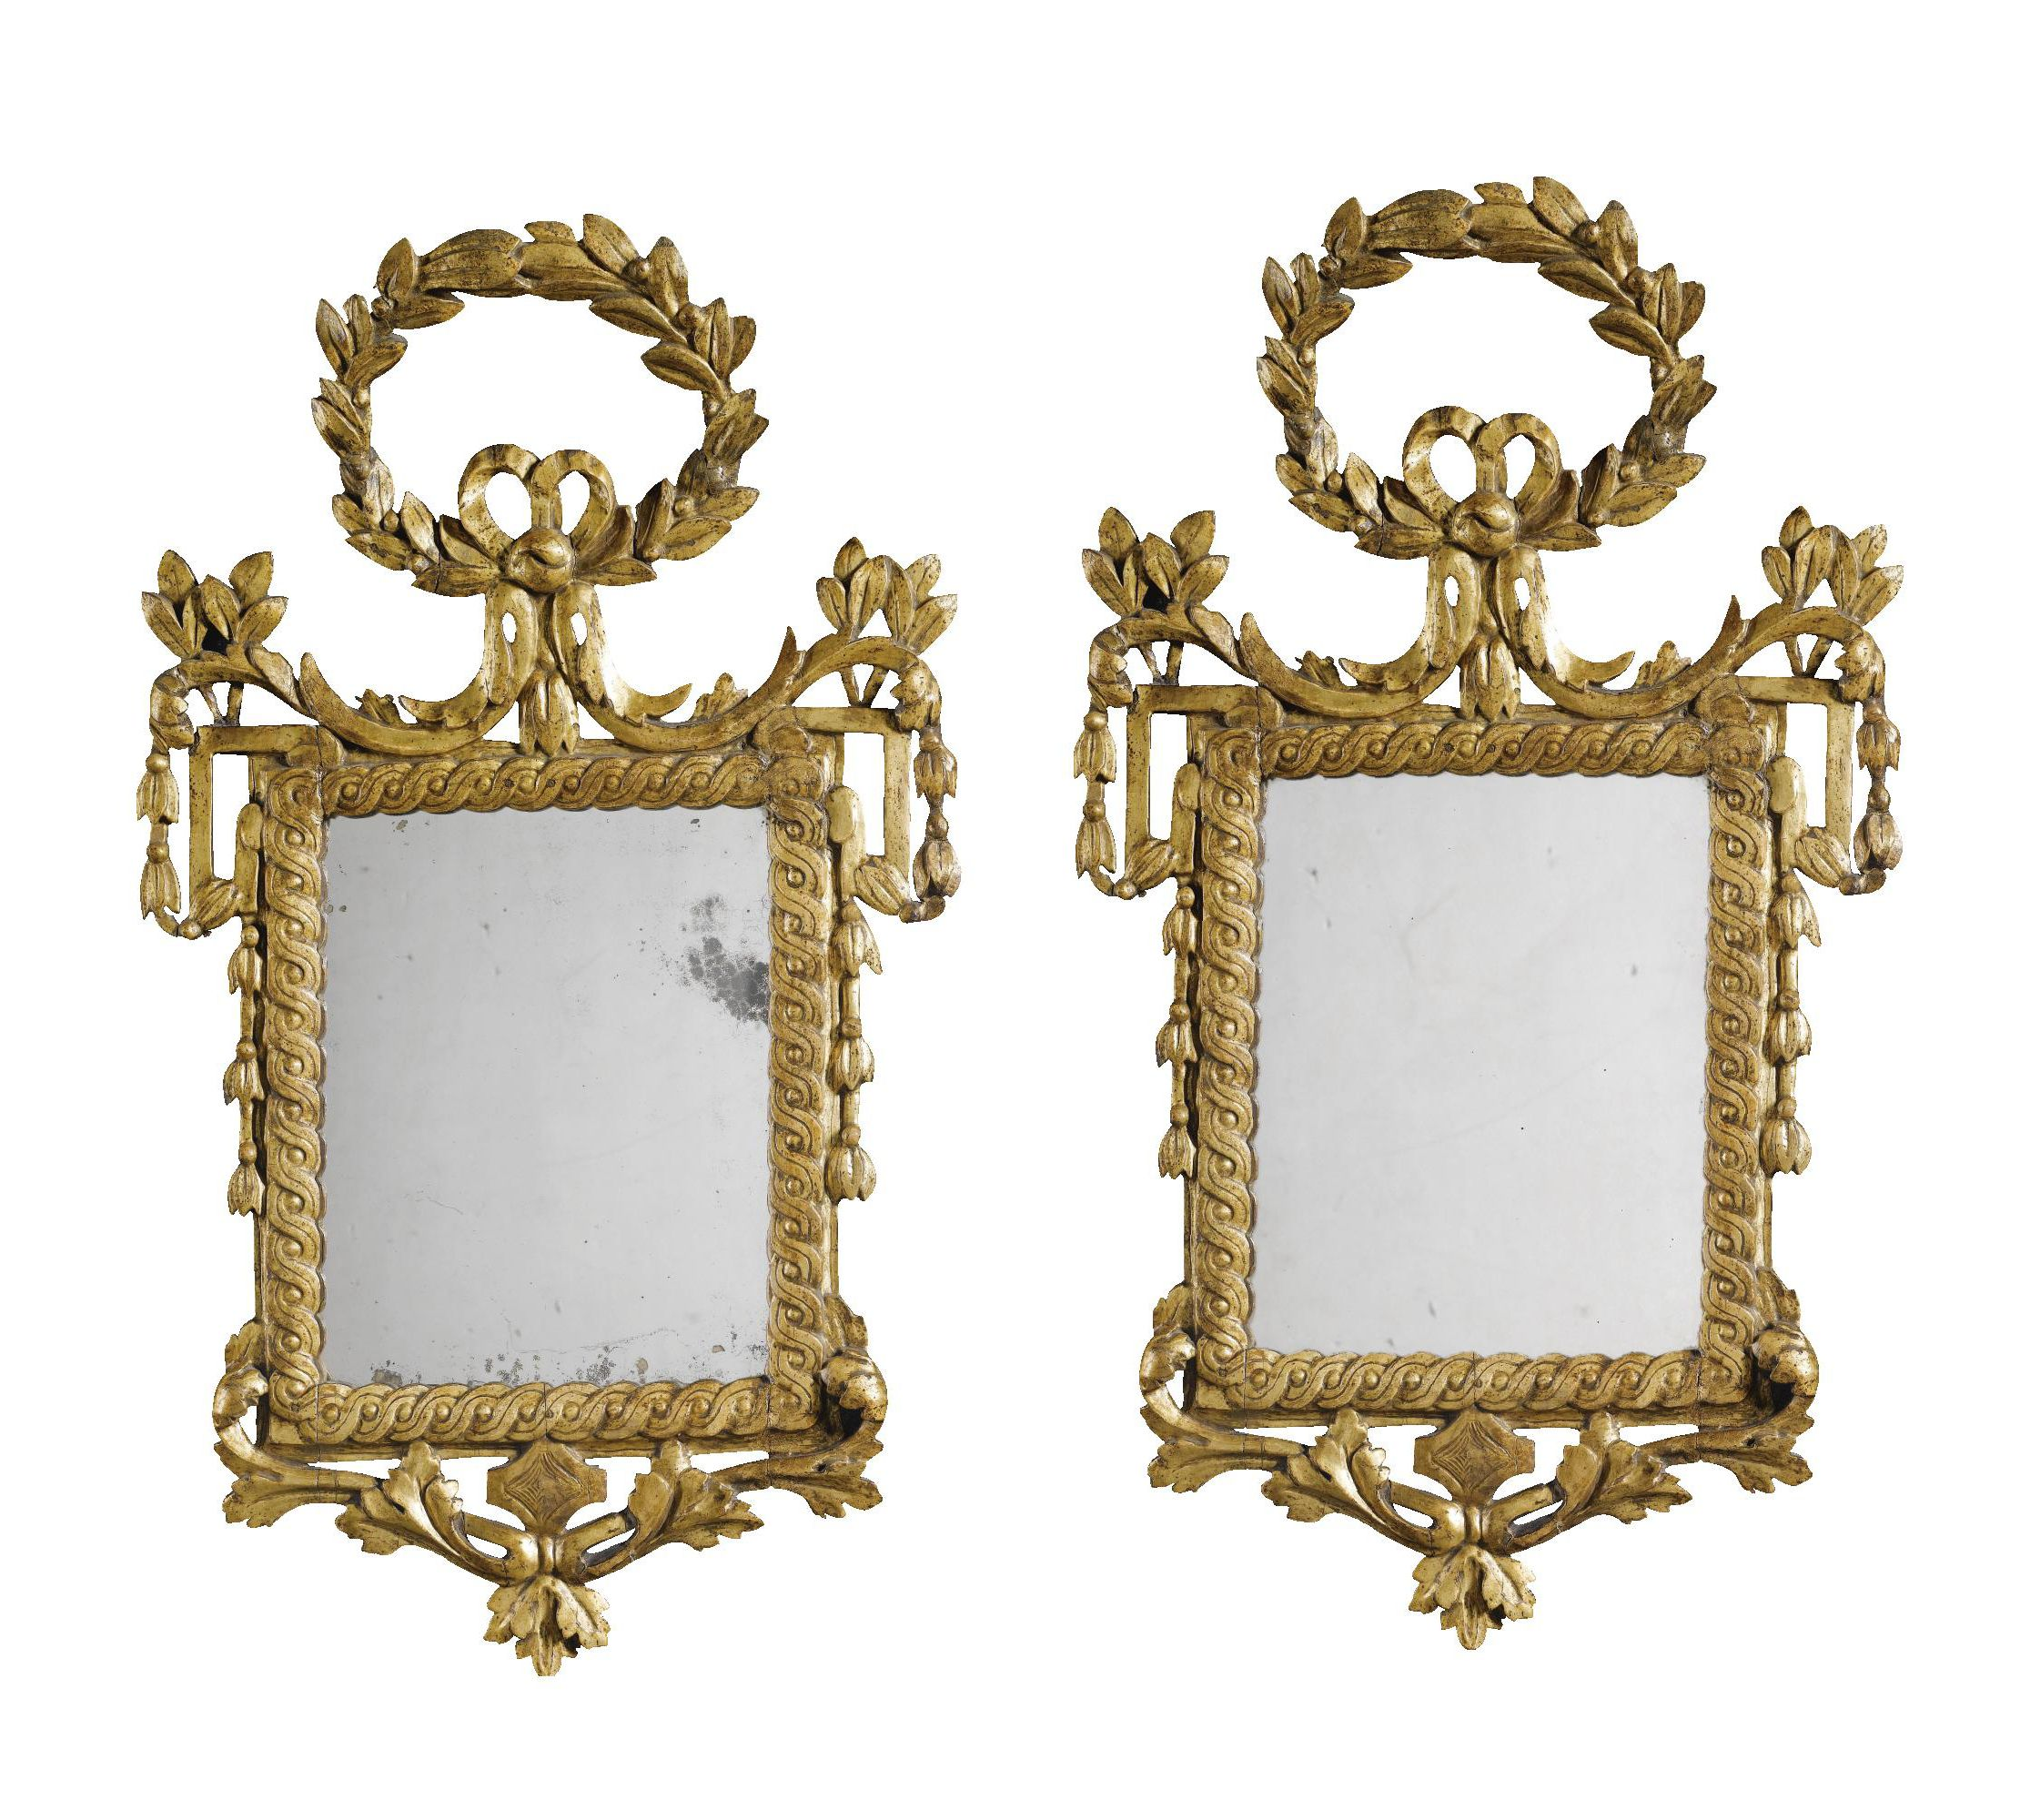 A pair of Italian giltwood wall mirrors, circa 1785, the laurel garland crestings above rectangular plates within guilloche-carved frames flanked by protruding pierced scroll corners - Dim: 80cm. high, 47cm. wide; 2ft. 7½ in., 1ft. 6½ in.